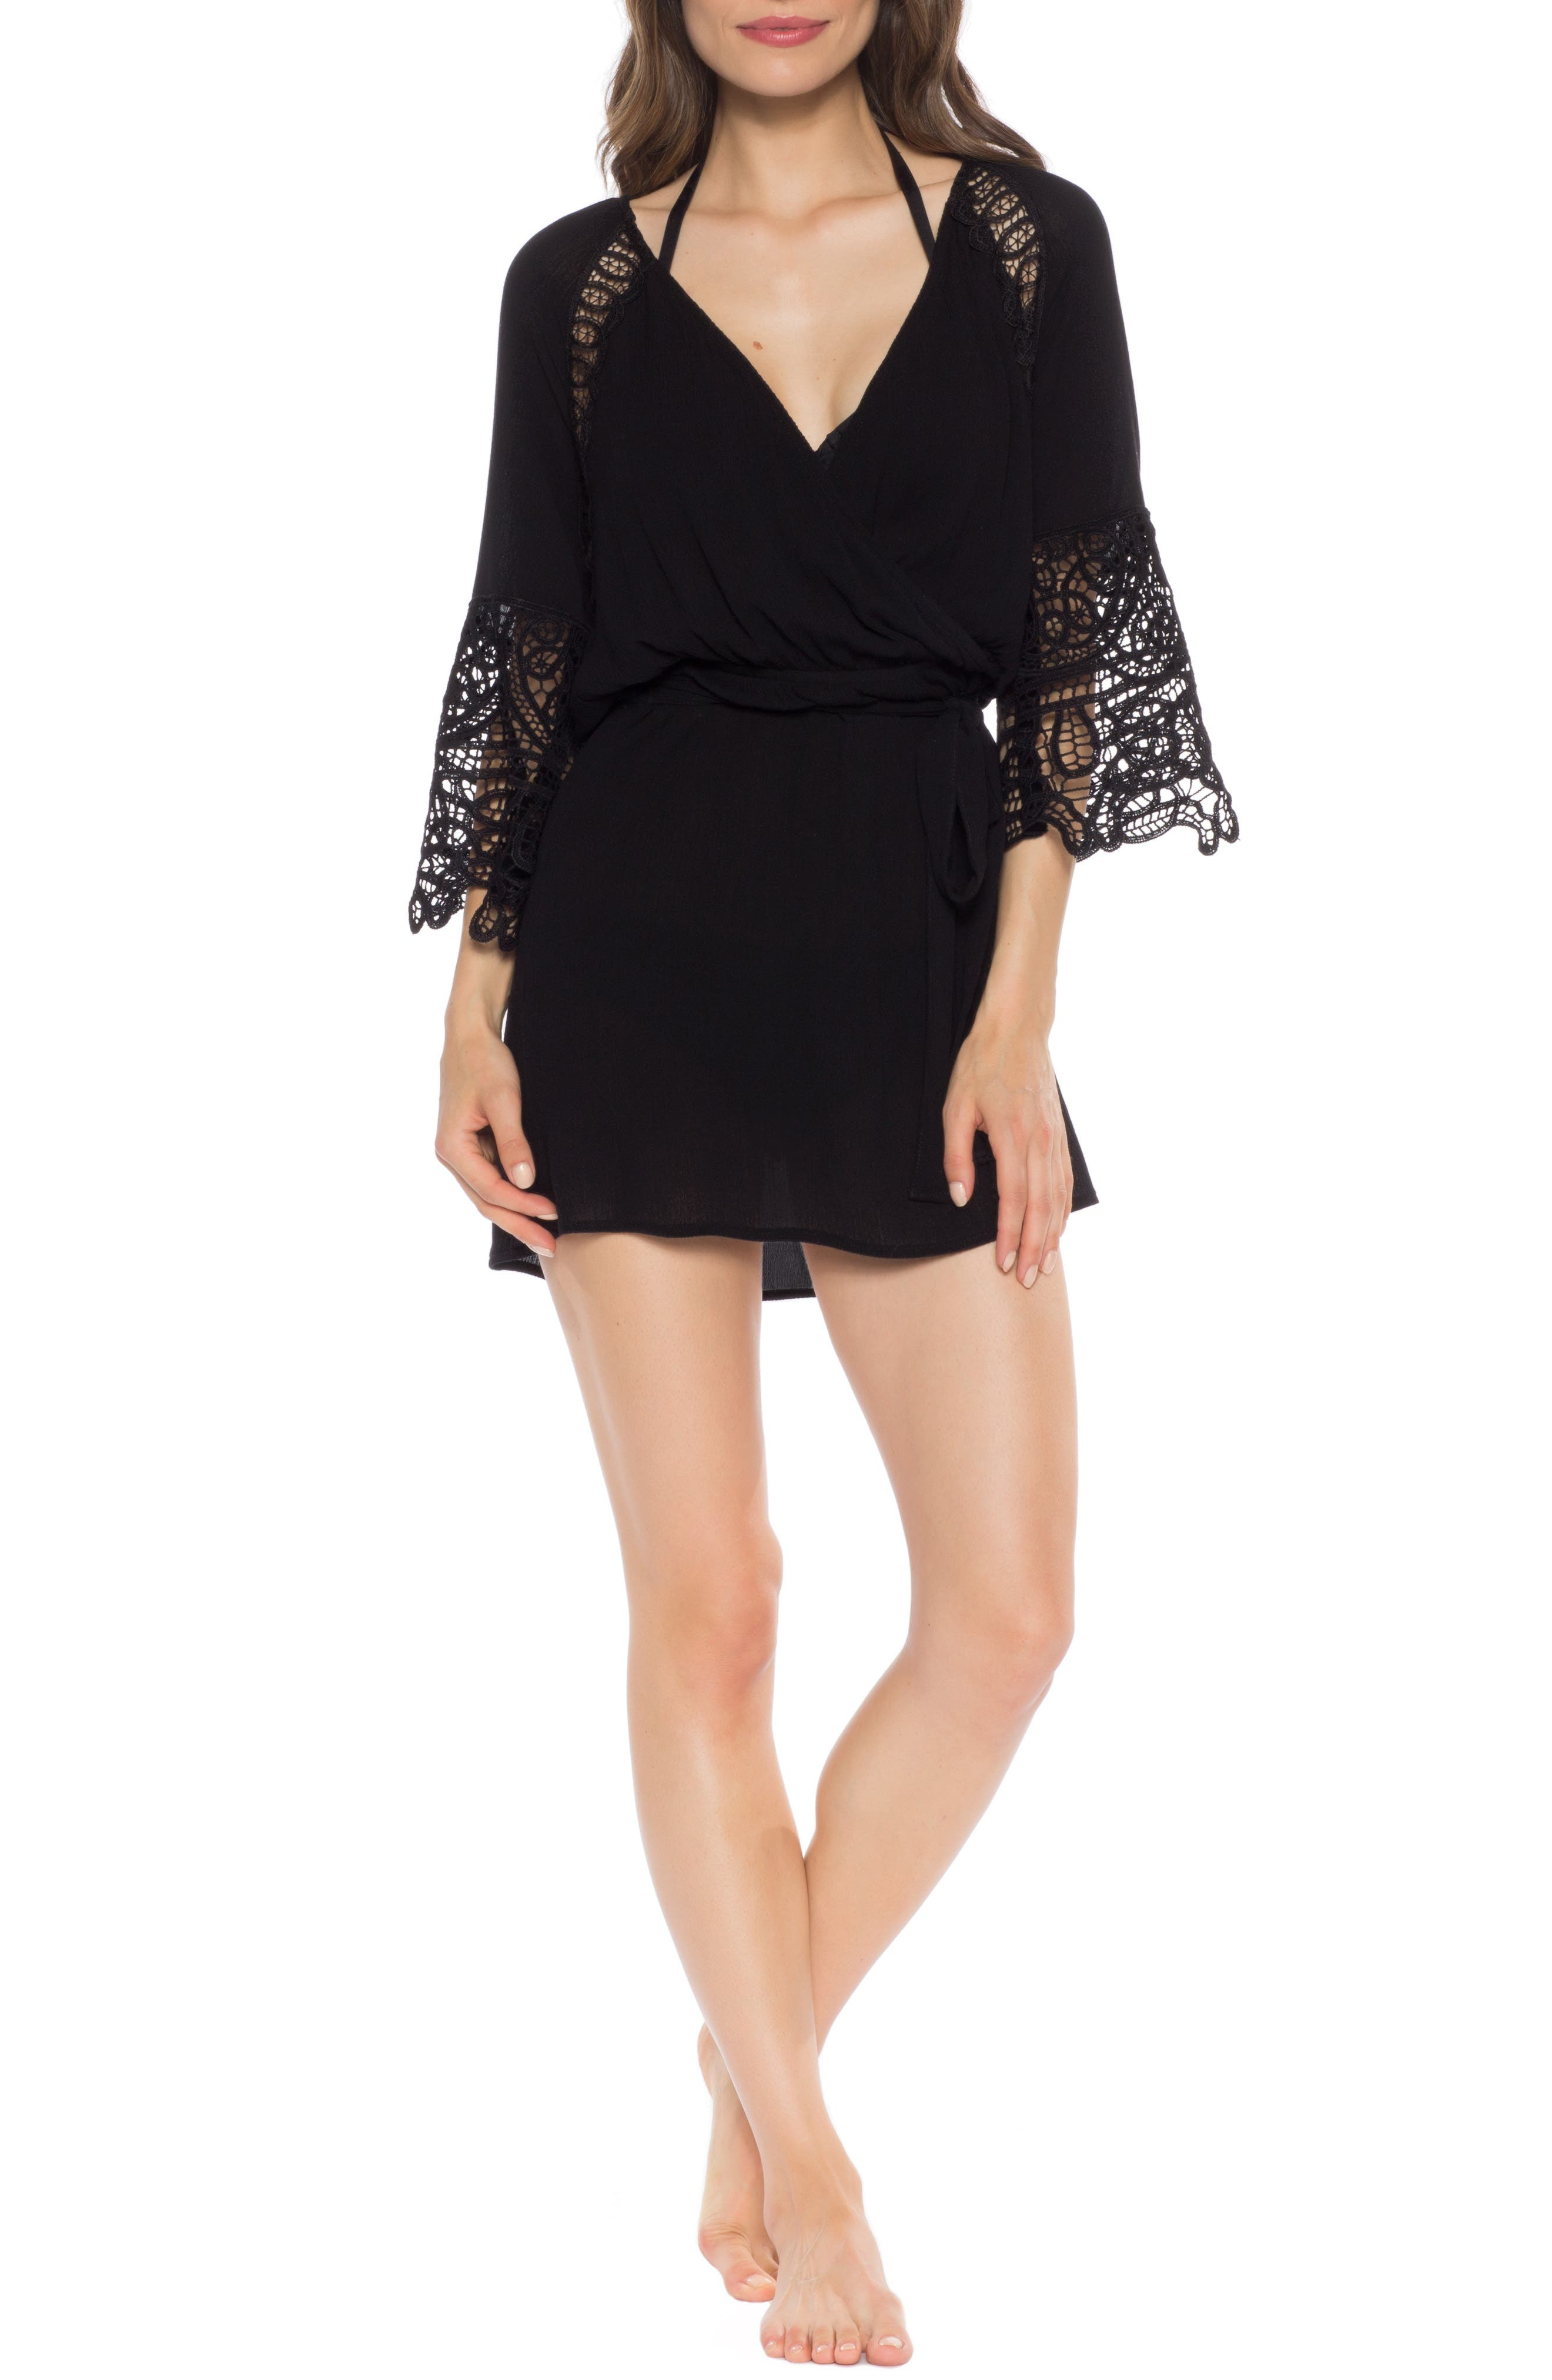 ISABELLA ROSE Homespun Lace Detail Cover-Up Tunic in Black